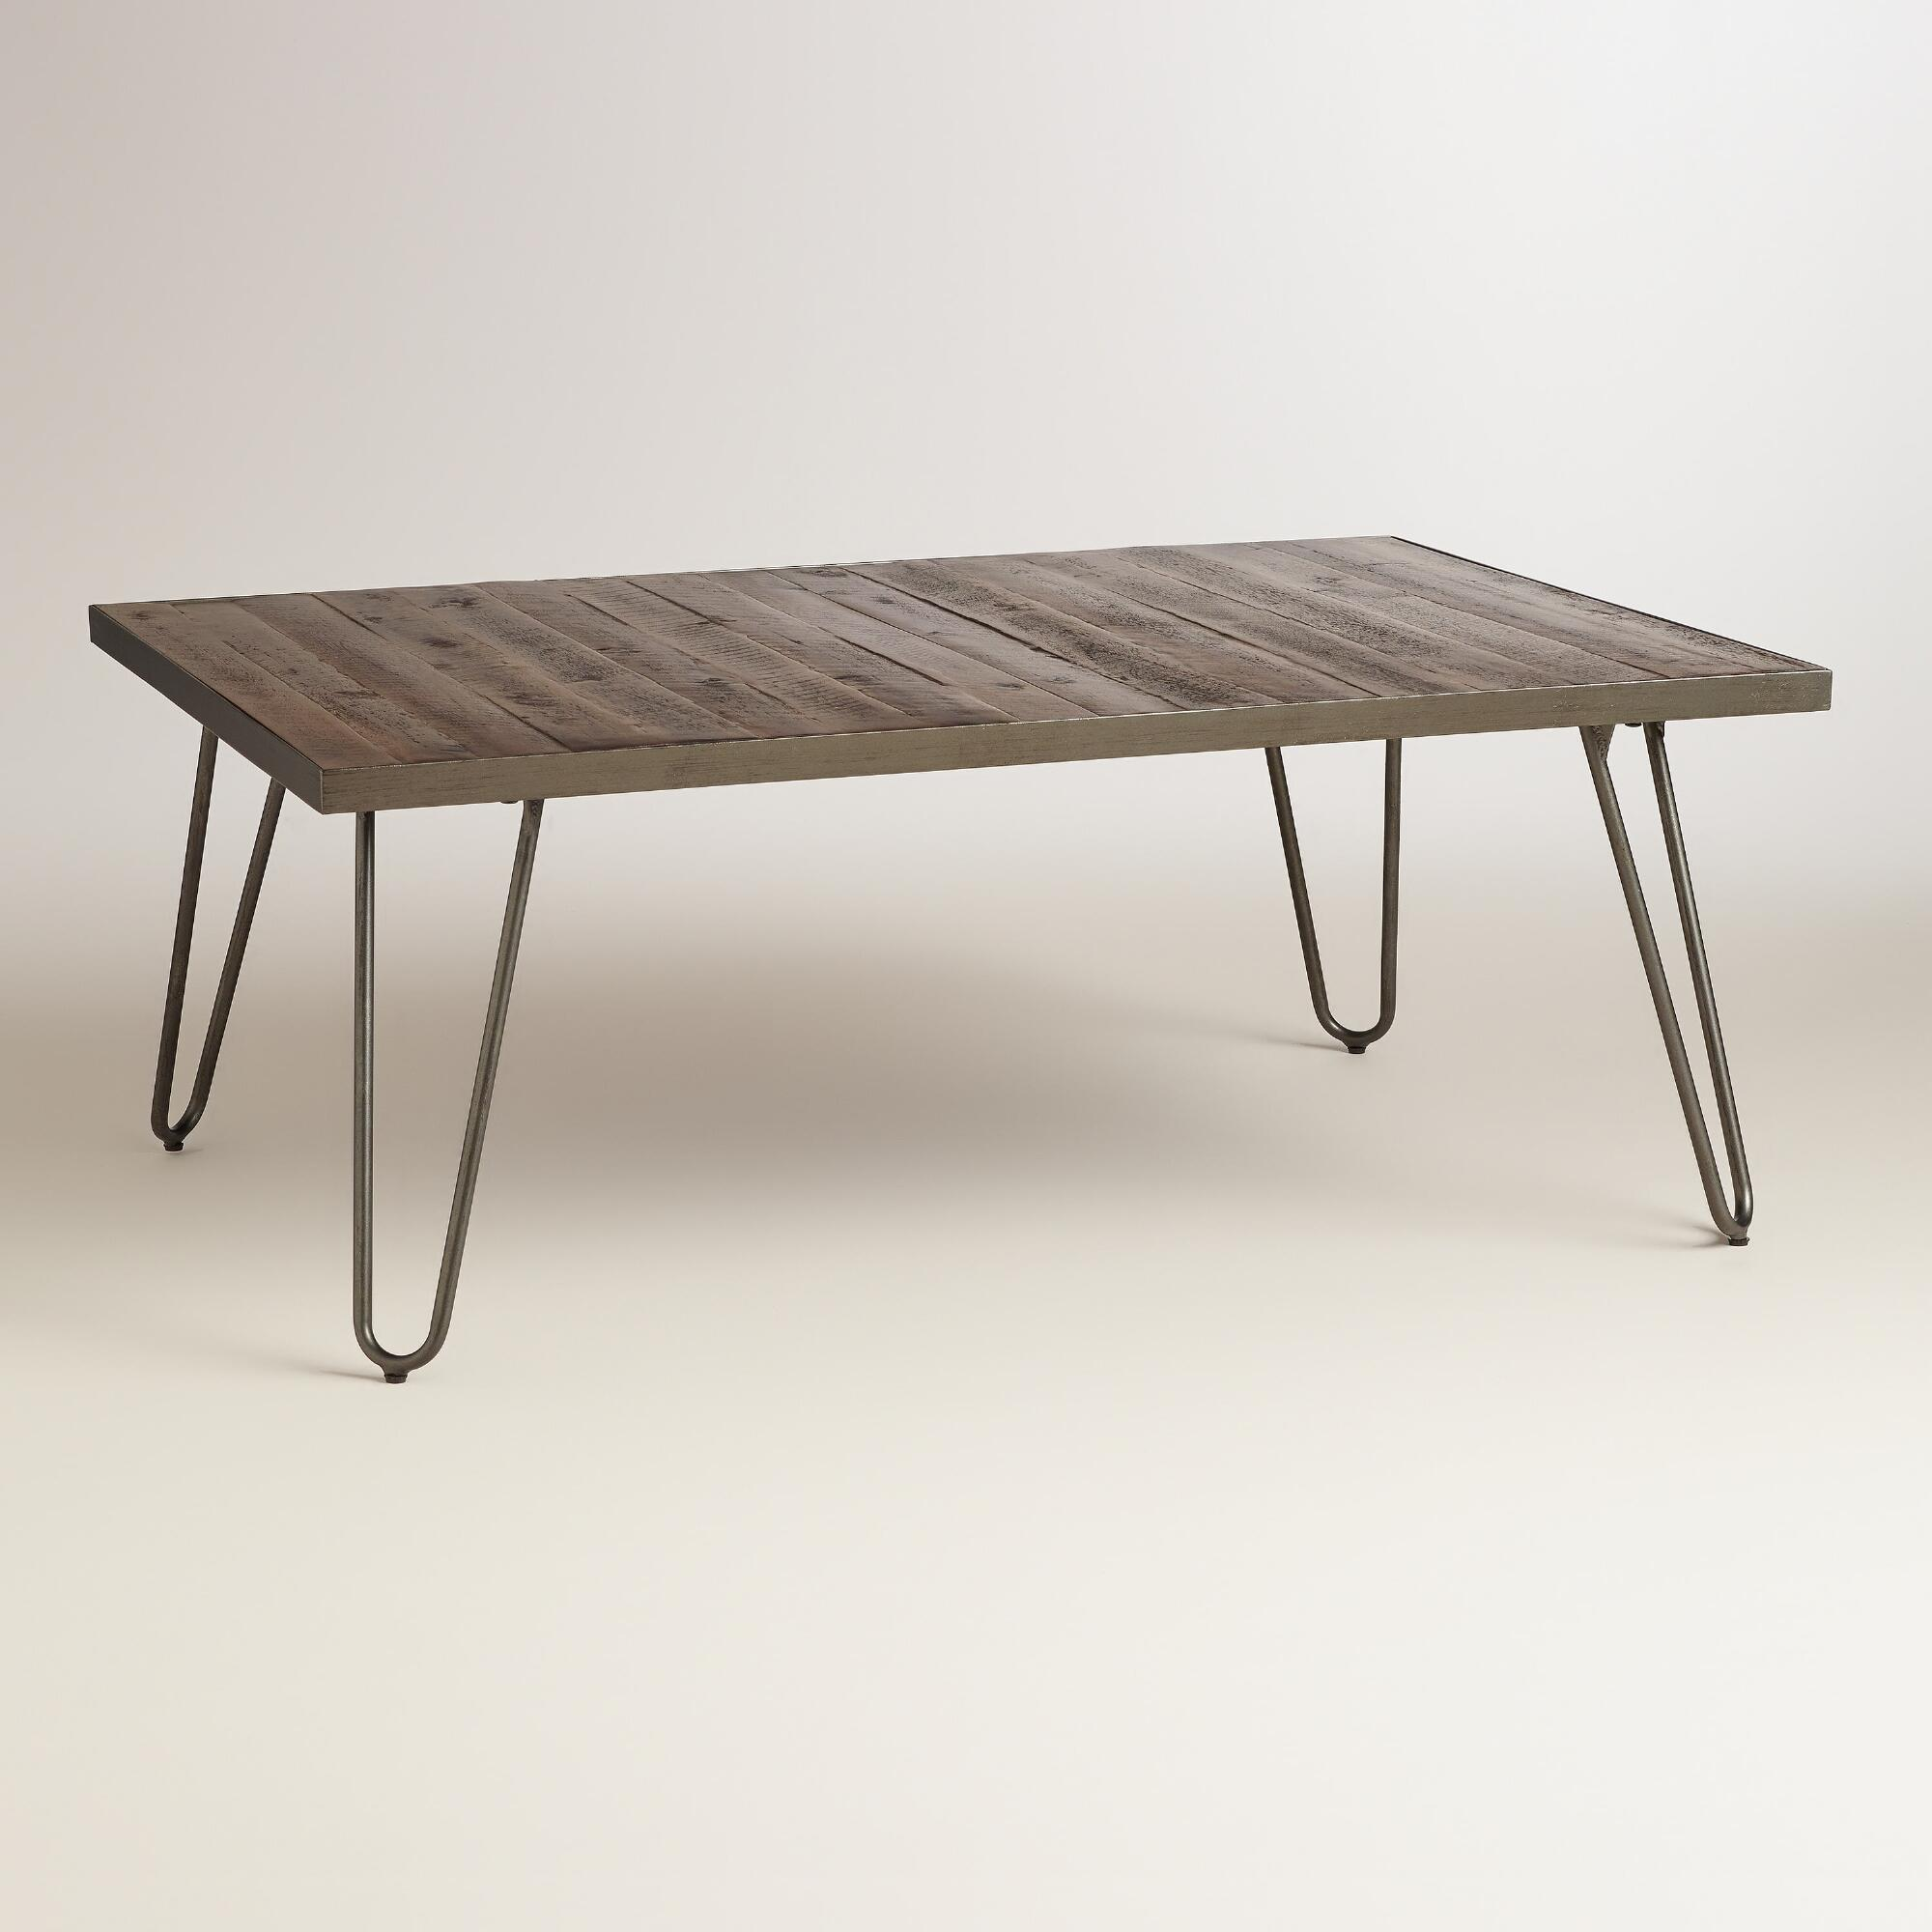 Round Wood Hairpin Coffee Table: Rectangular Wood Hairpin Coffee Table